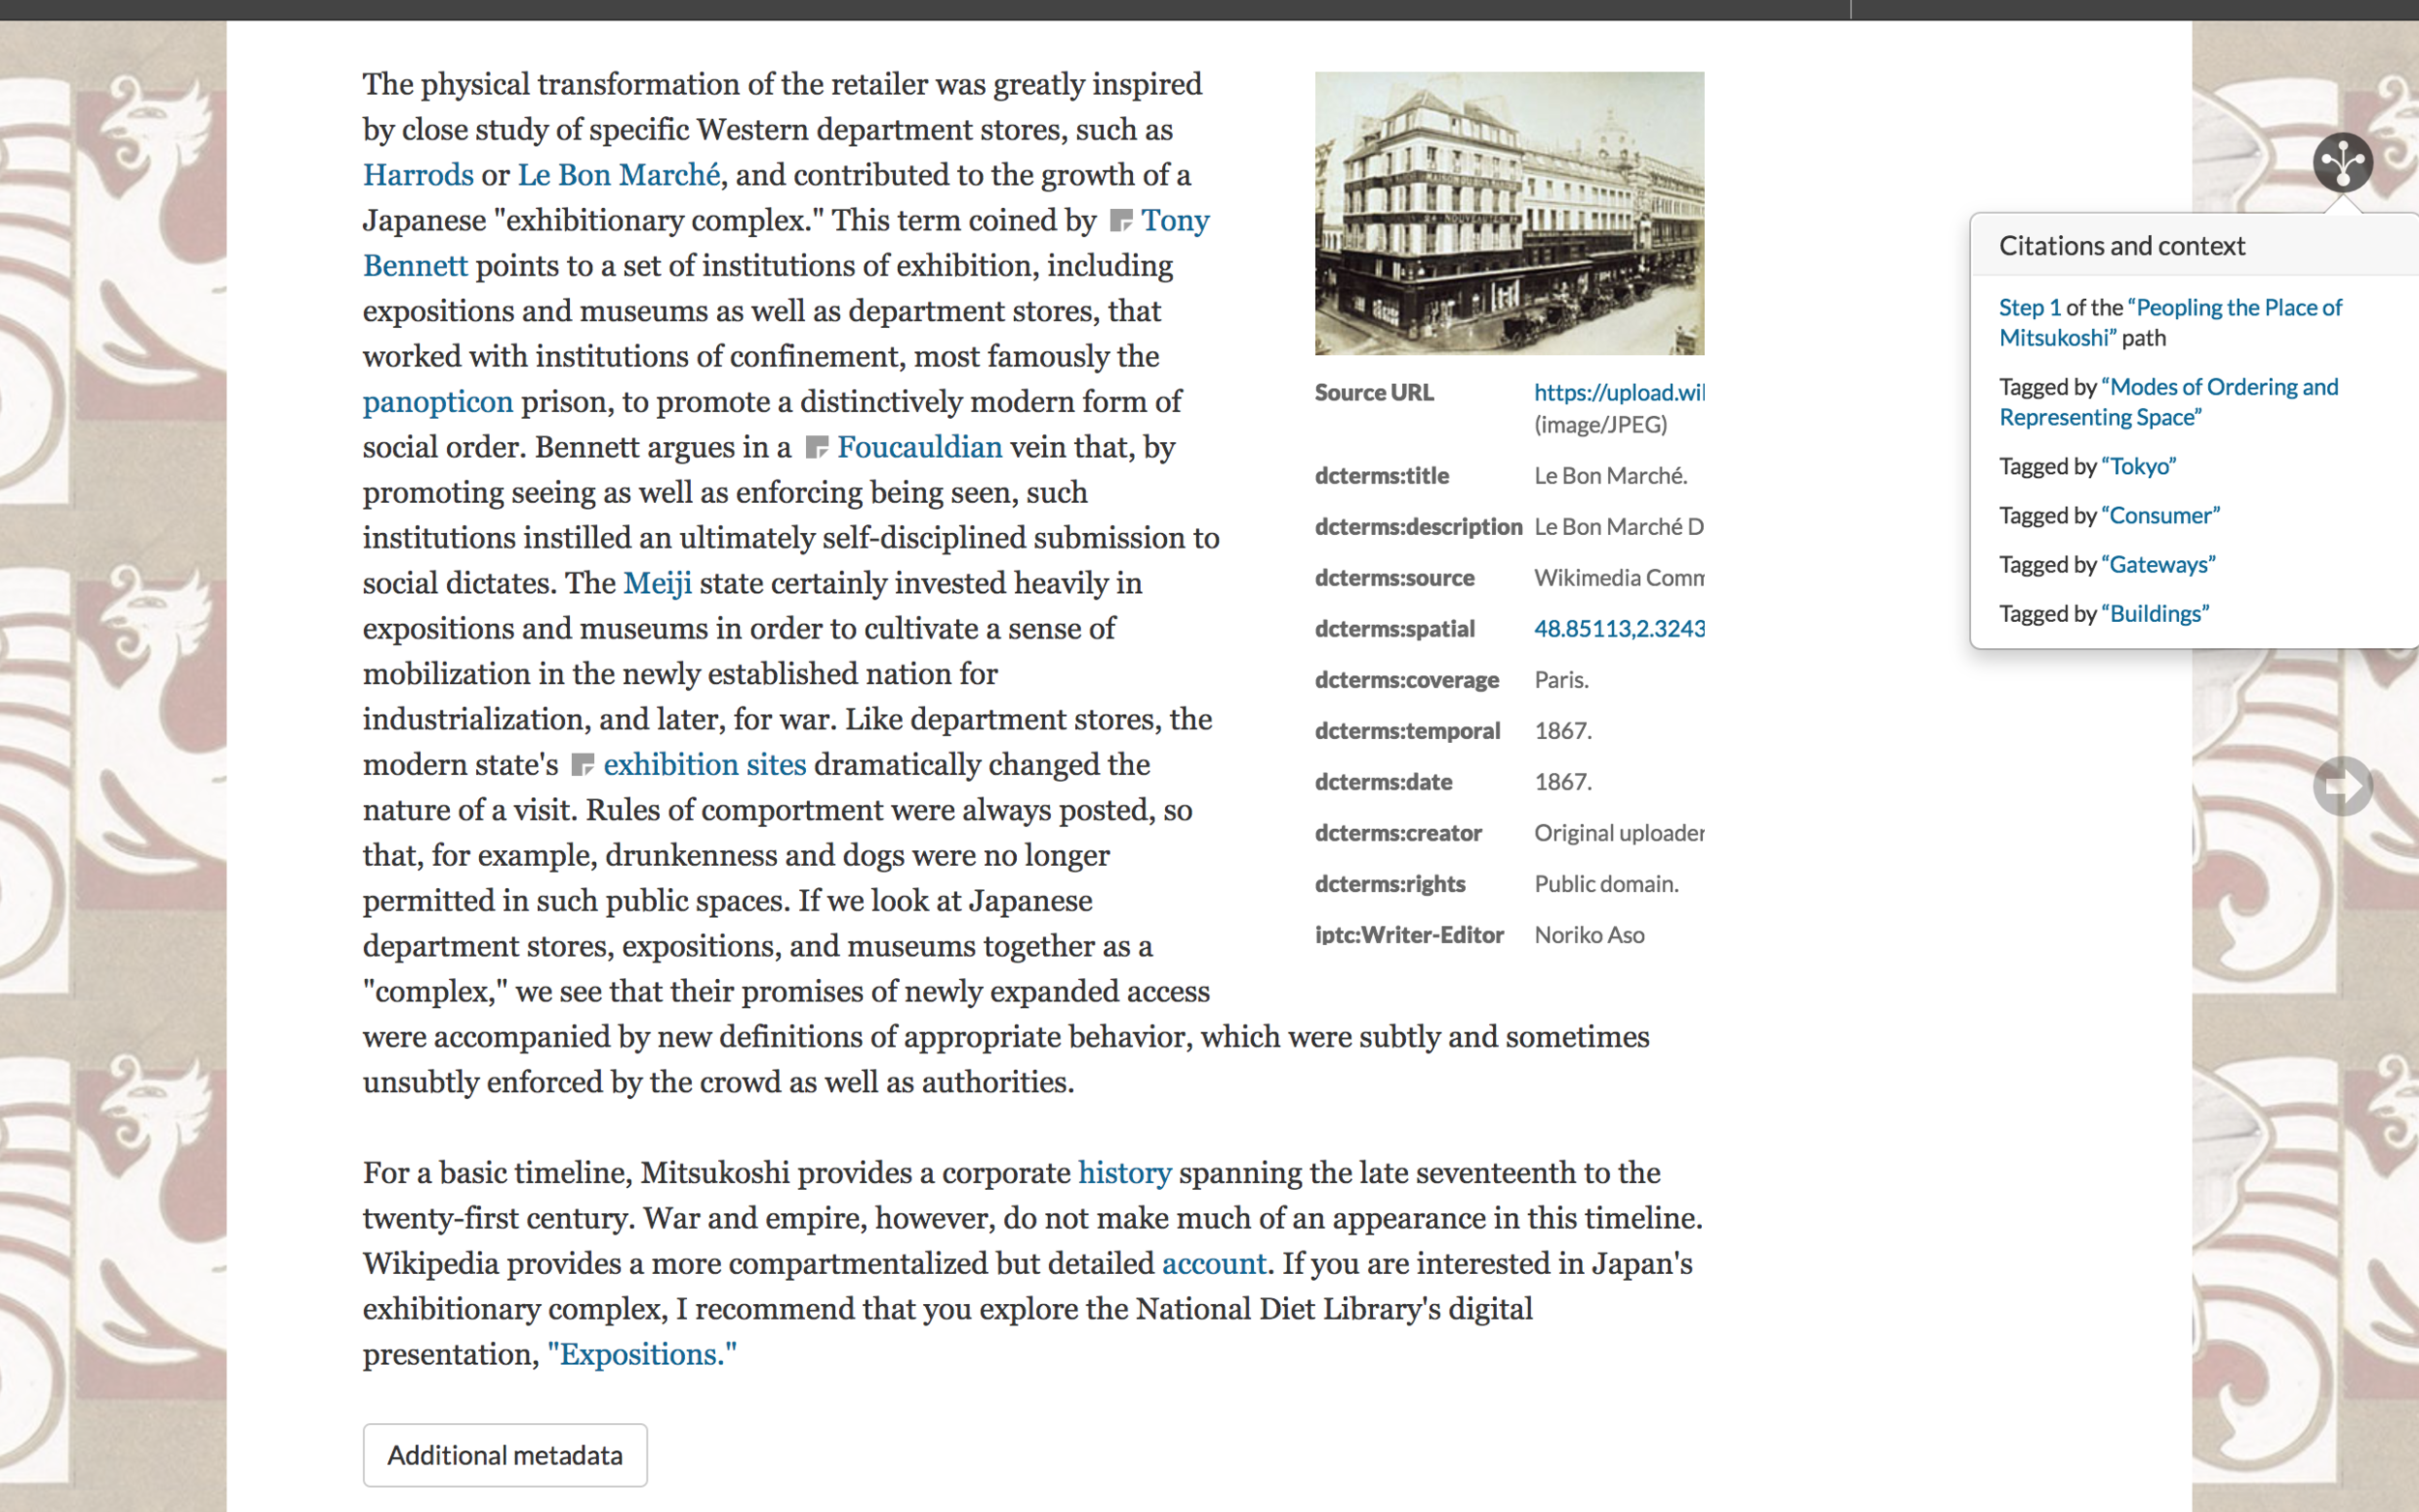 "Figure 1. A section of a page from the ""Mitsukoshi: Consuming Places"" module (by Noriko Aso) in  Bodies and Structures,  May 1, 2019. The page displays hyperlinked scholarly text, images with metadata, links to all tags applied to the page, and a box containing the page's geospatial and other author-added metadata, which can be toggled open/closed using the ""Additional metadata"" button. Credit: Noriko Aso, David R. Ambaras and Kate McDonald."